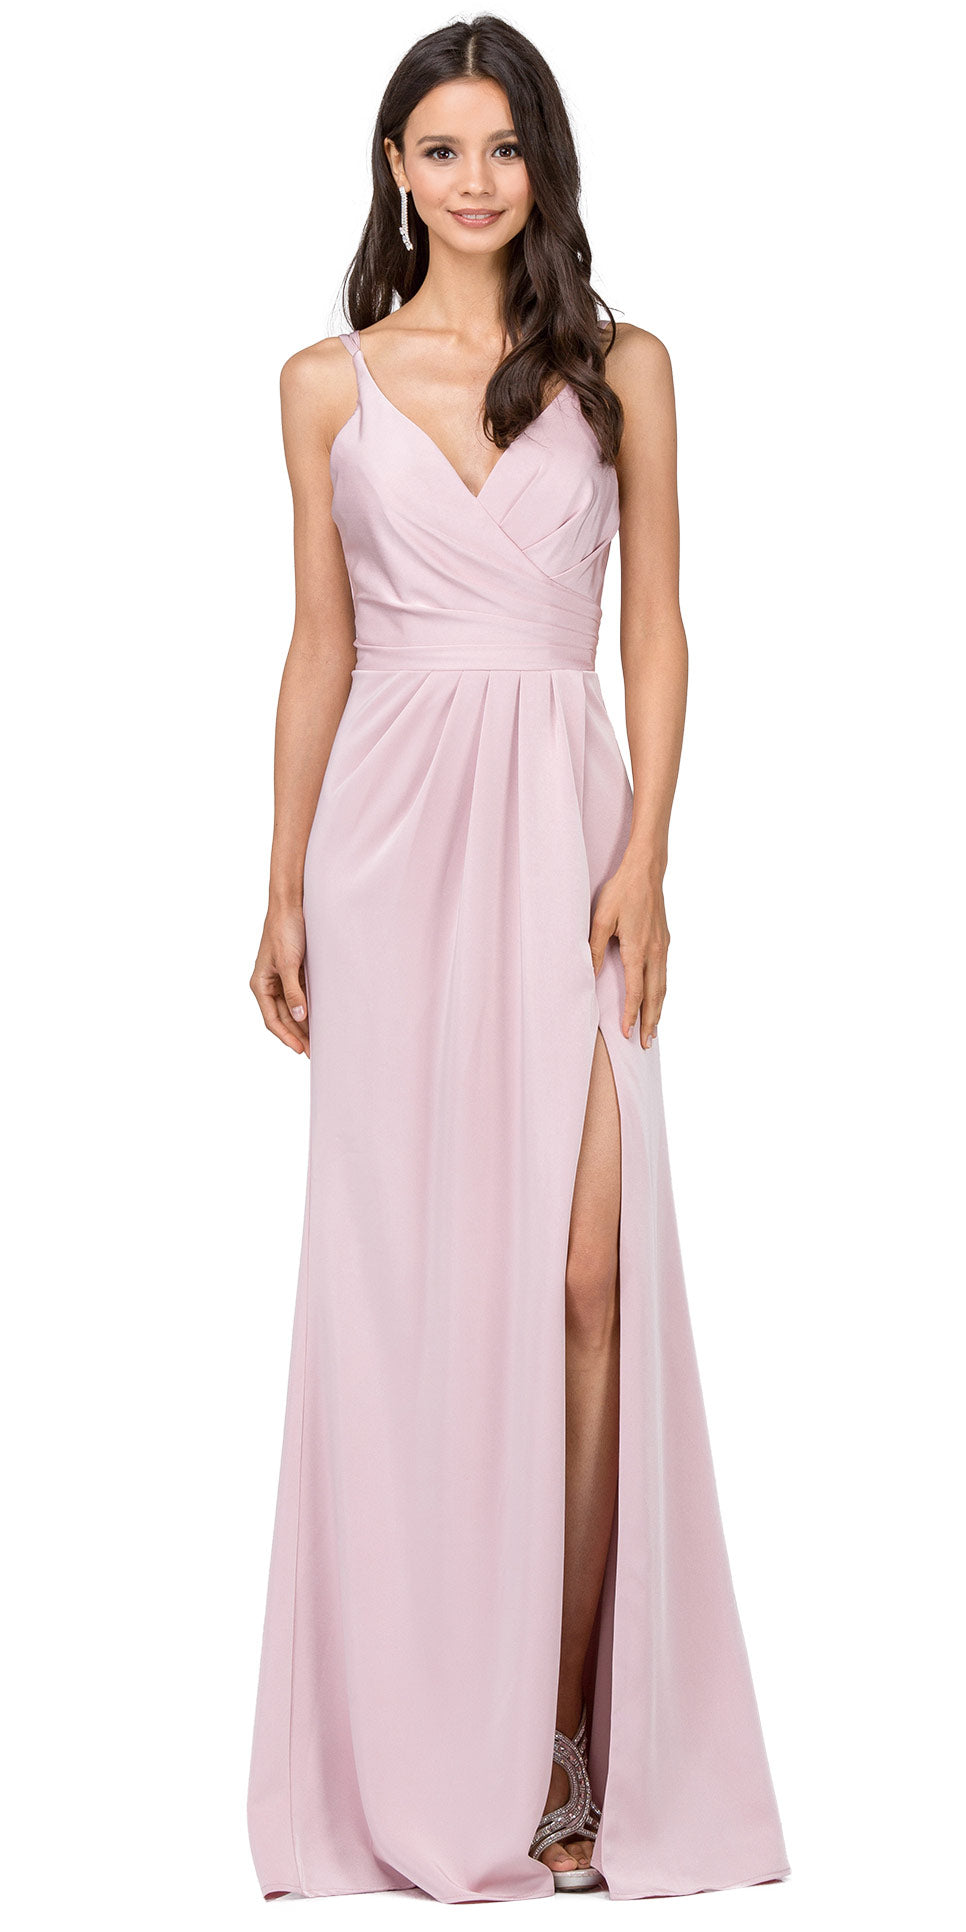 Main image of Deep V-neck Pleated Bust Long Satin Formal Evening Dress